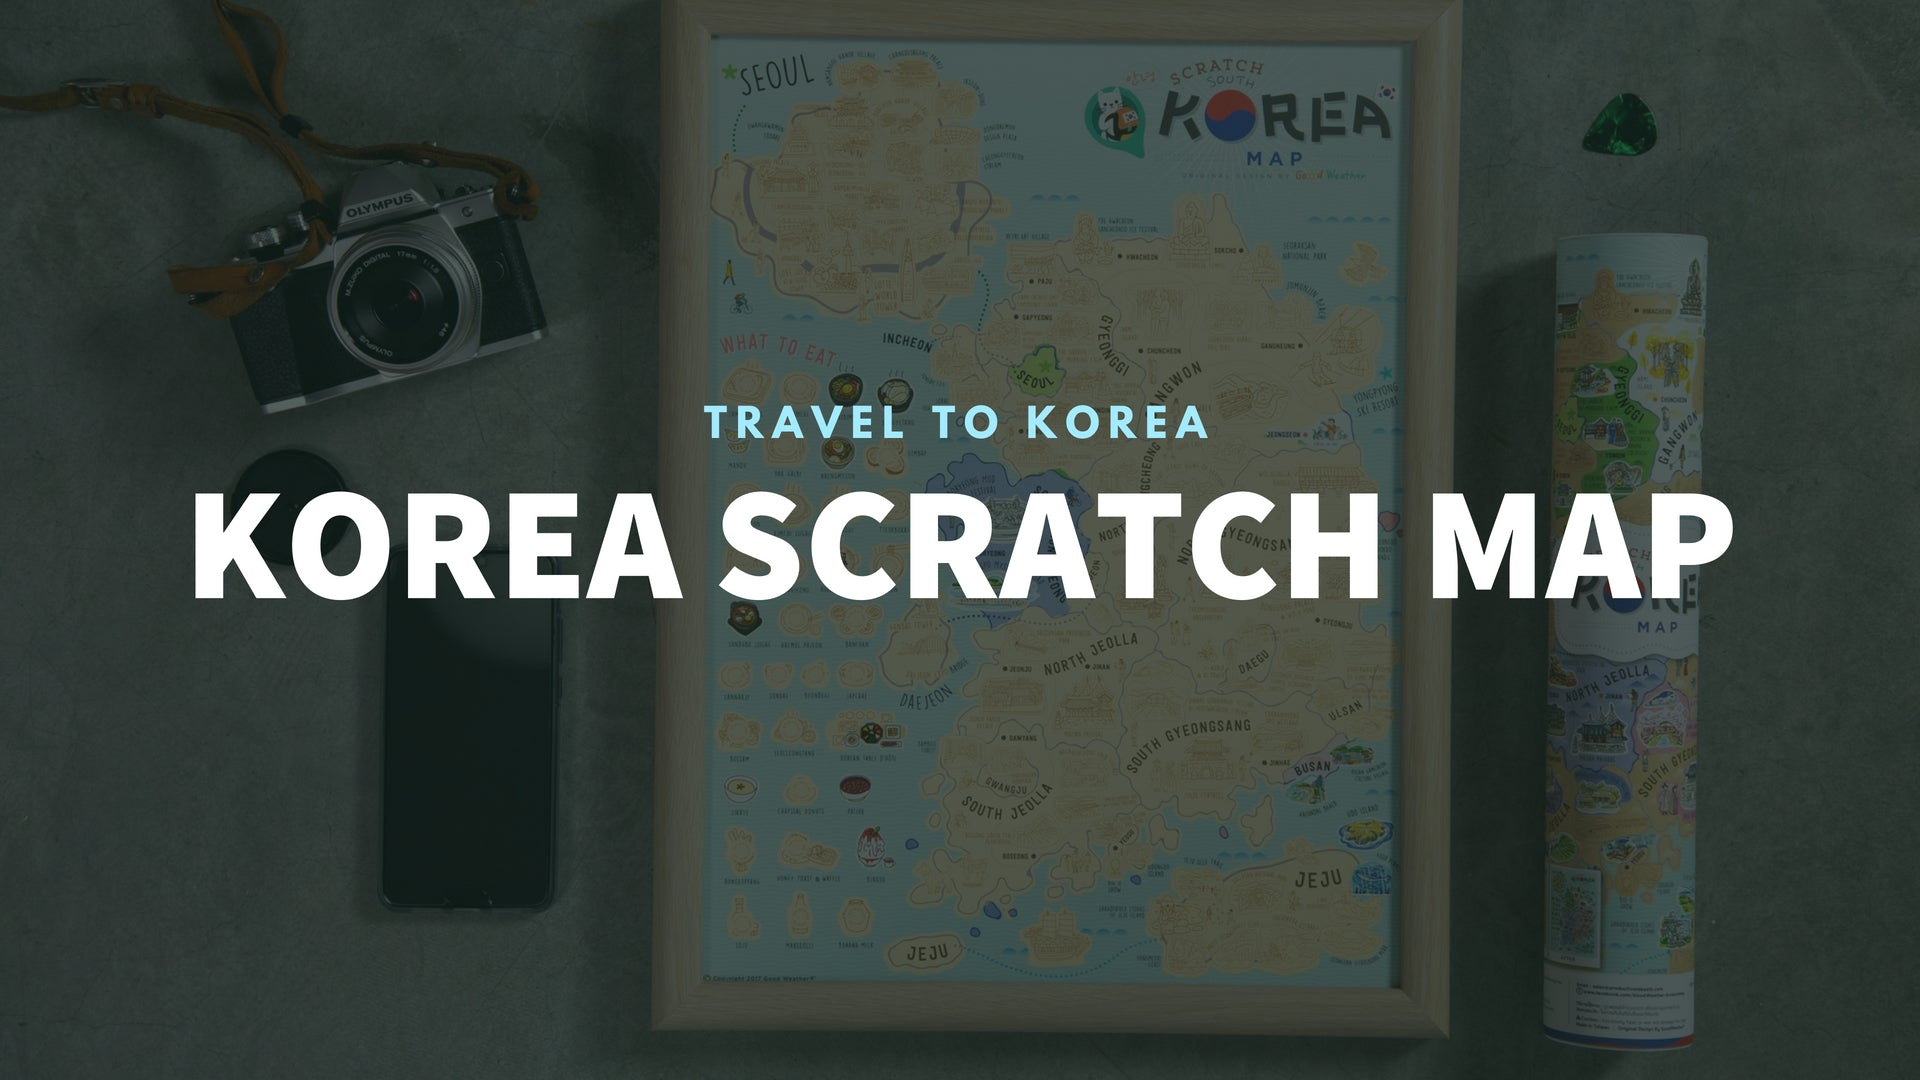 Good Weather Korea Scratch Travel Map Travel to Korea deluxe luckies world travel map with pins europe uk rosegold small personalised Scratch Off Traveling Korea travelization 韓國 刮刮地圖 刮刮樂 世界地圖 banner - GadgetiCloud